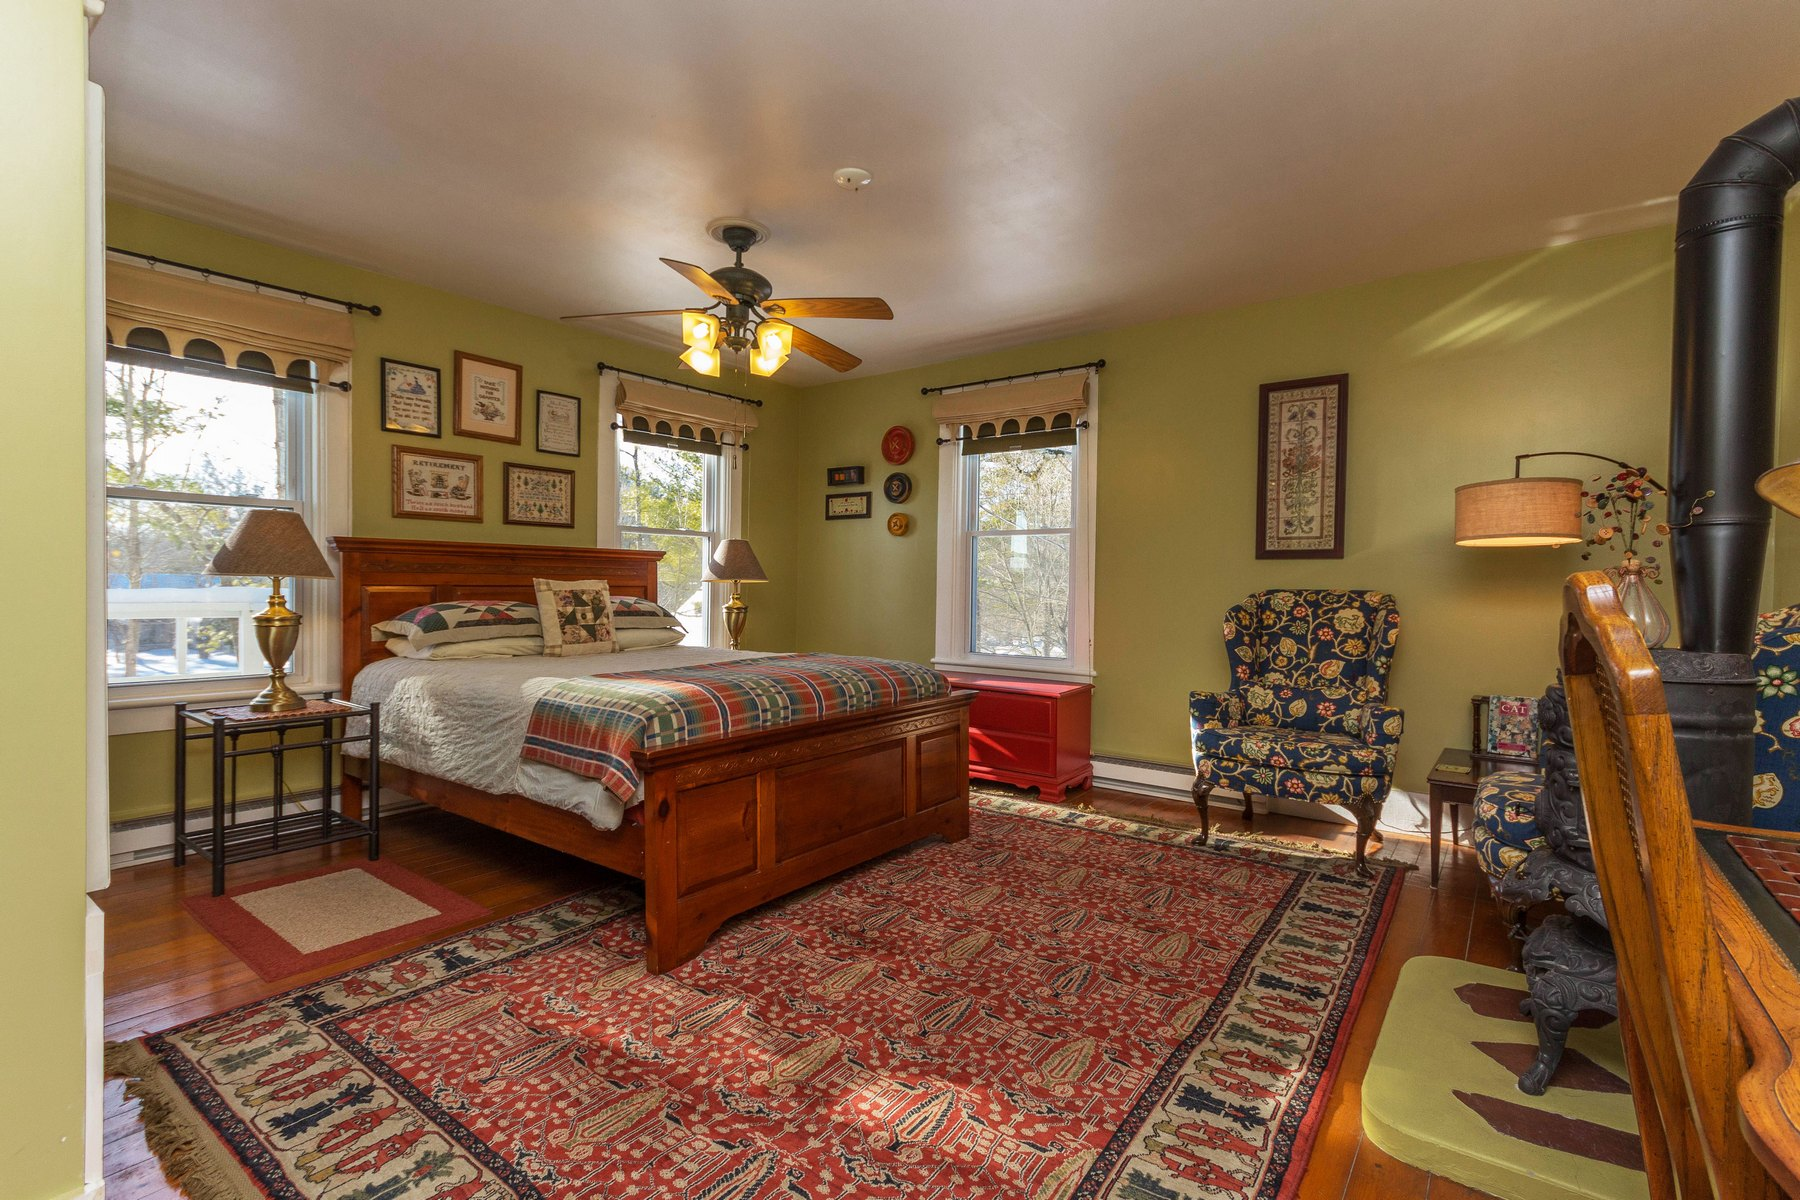 Additional photo for property listing at Saratoga Farmstead Bed and Breakfast 41A  Locust Grove Rd Saratoga Springs, New York 12866 United States